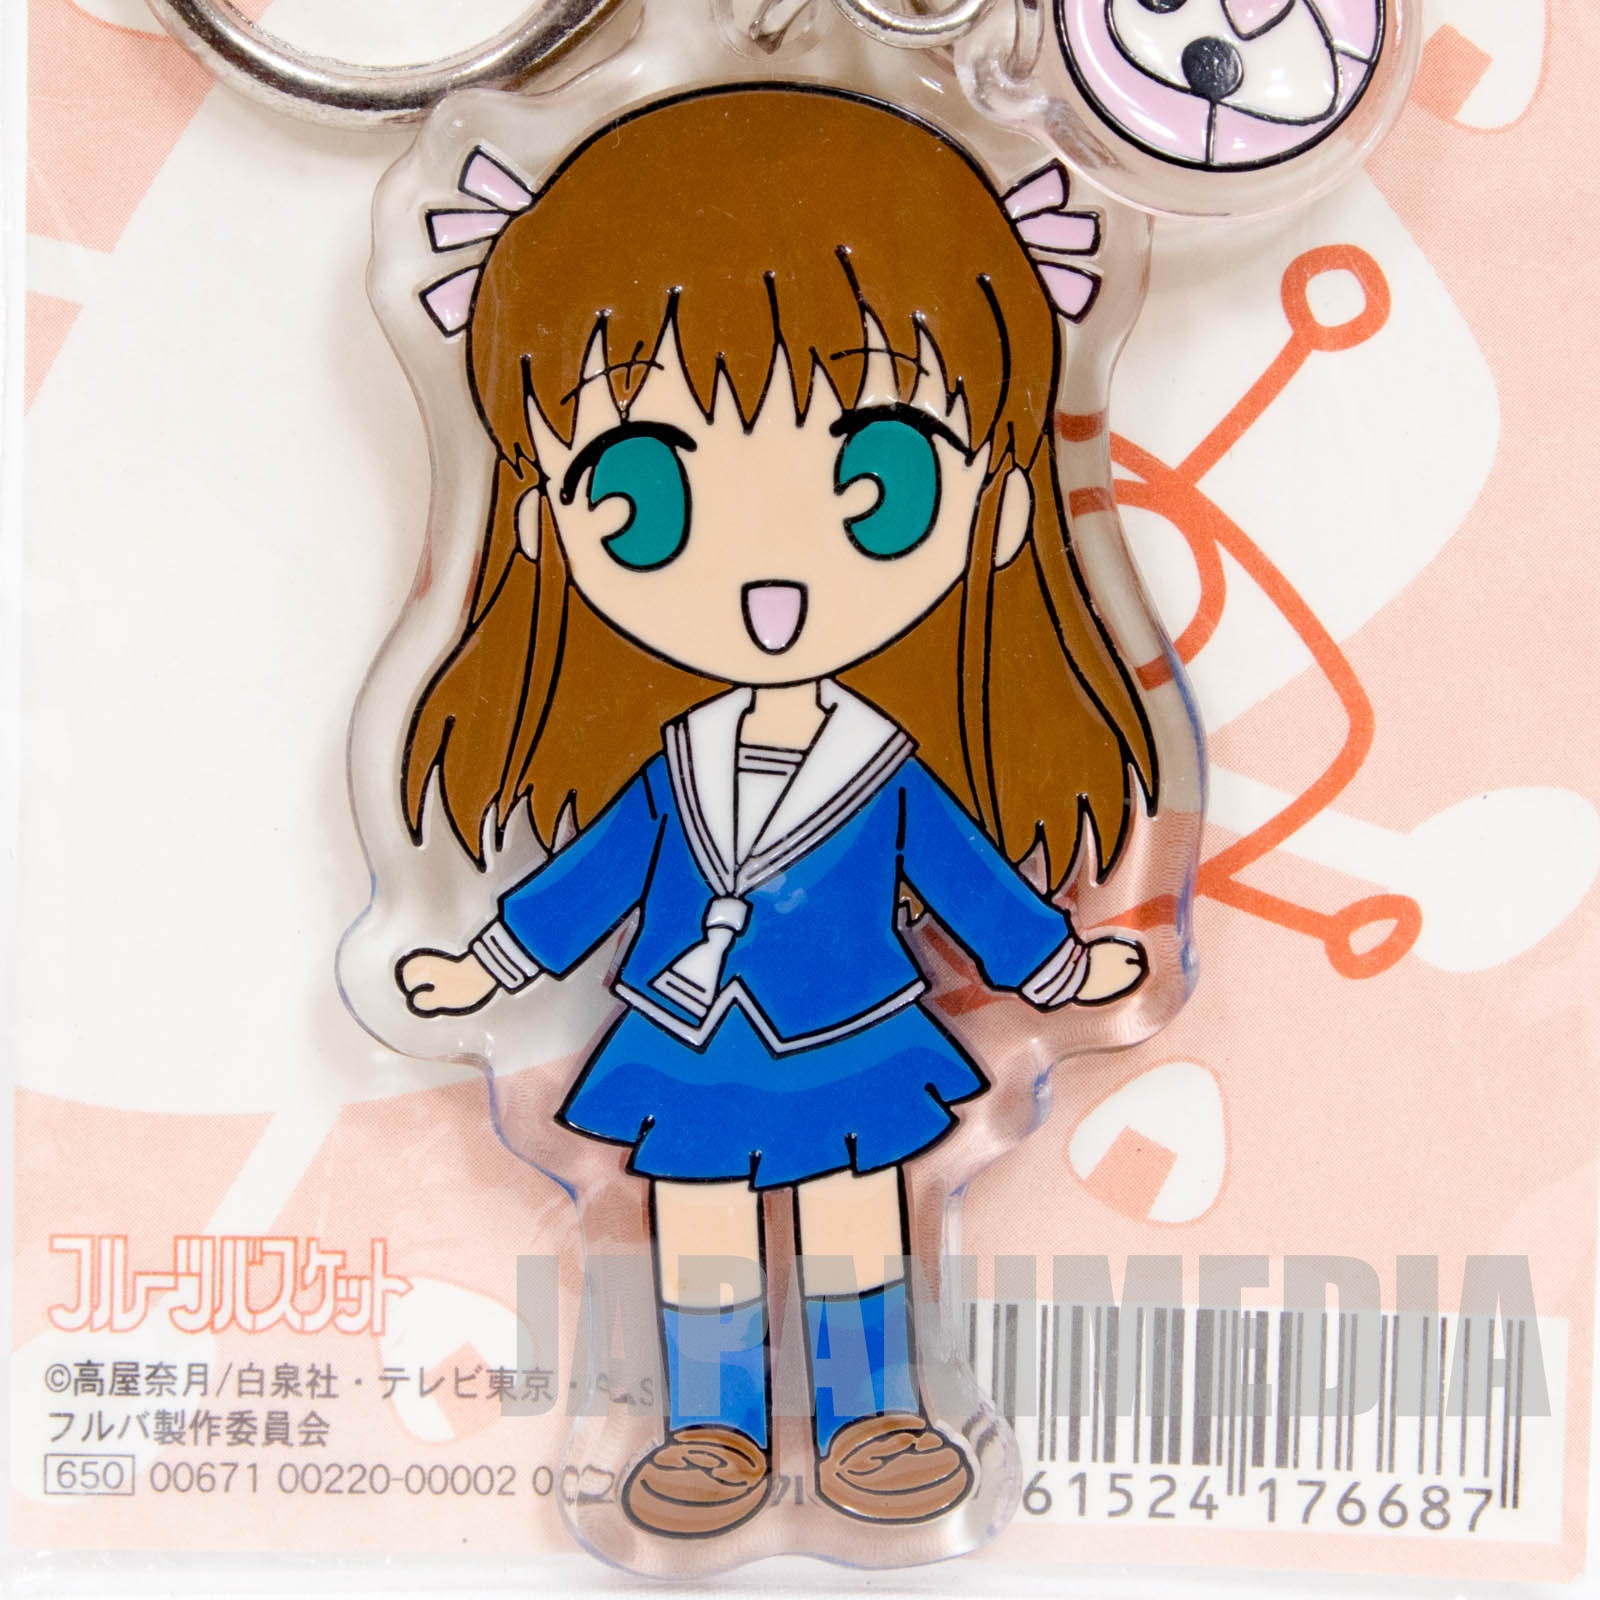 RARE!! Fruits Basket Tohru Honda Acrylic keychain JAPAN ANIME MANGA